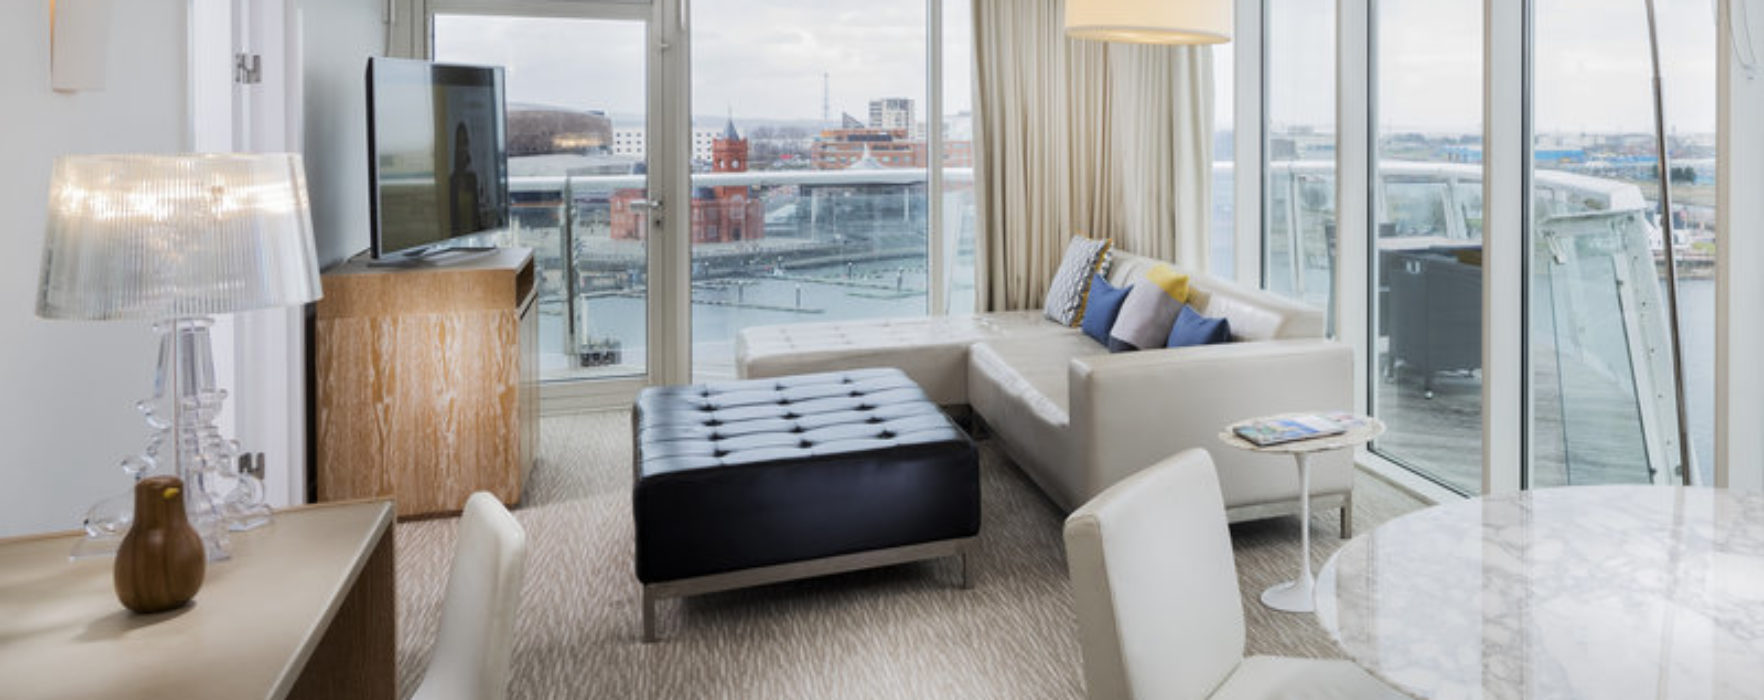 CITY BREAKS: Luxury with a conscience at voco St David's, Cardiff